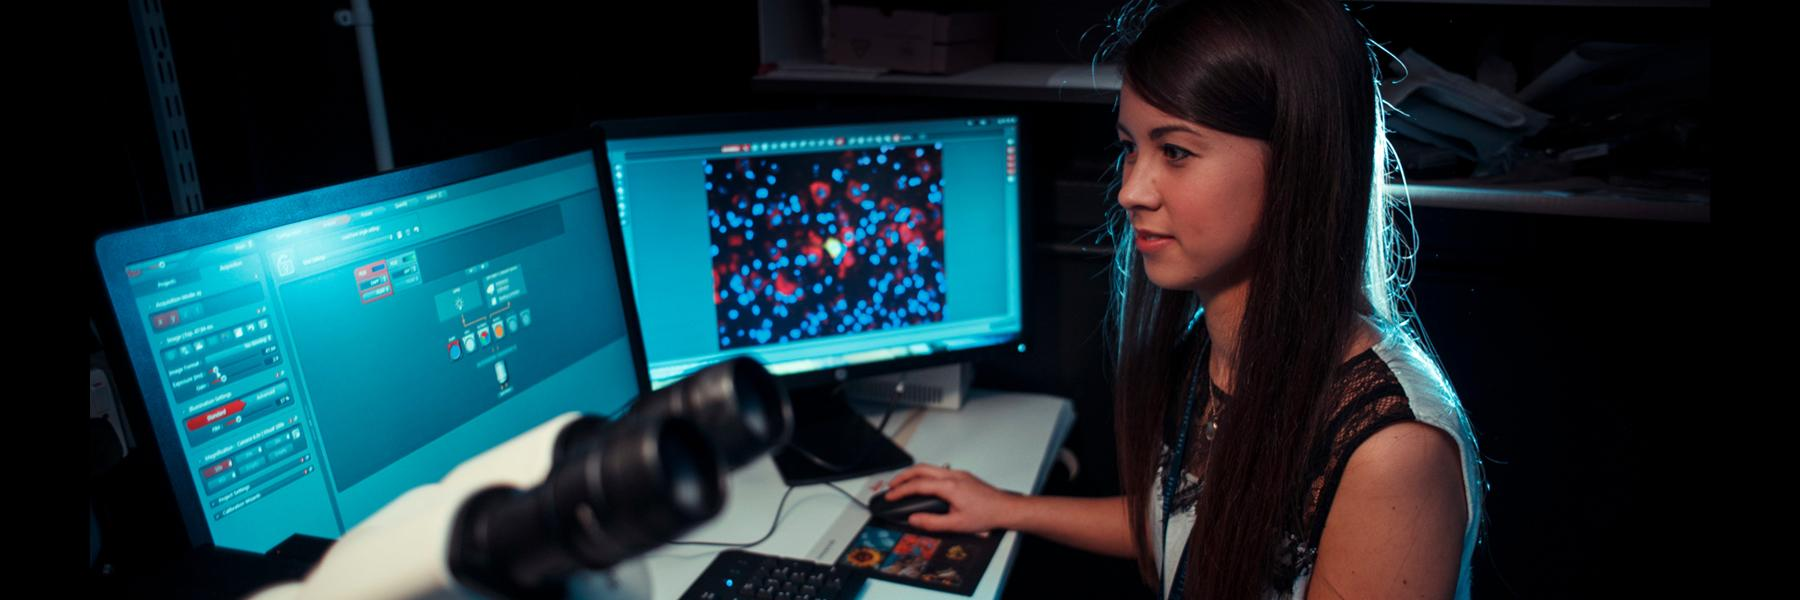 A researcher studying cells on a screen